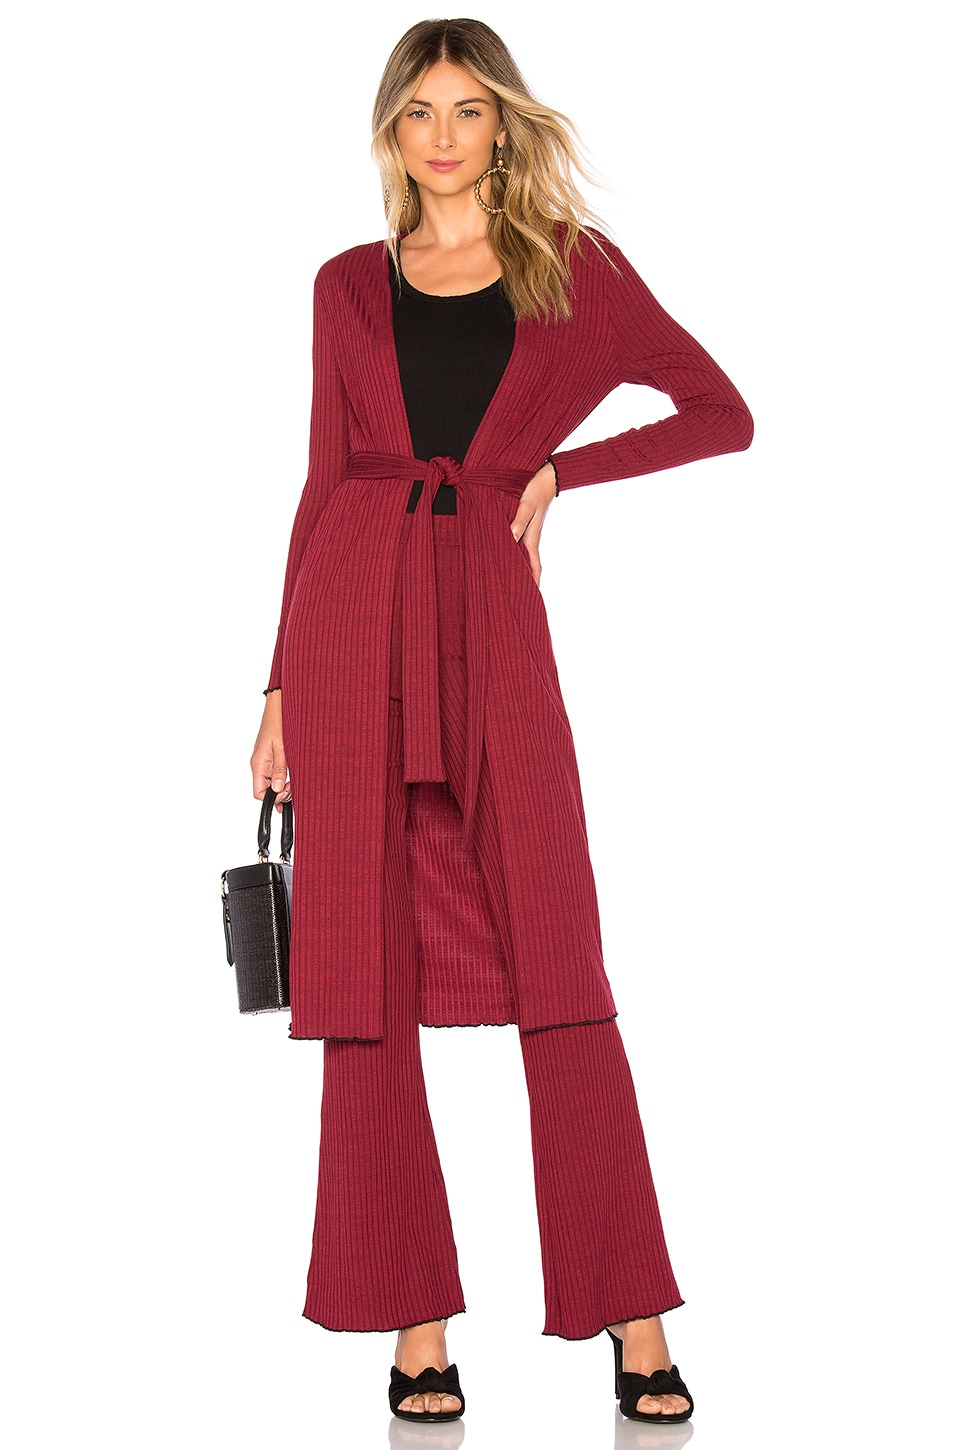 House of Harlow 1960 x REVOLVE James Cardigan in Maroon